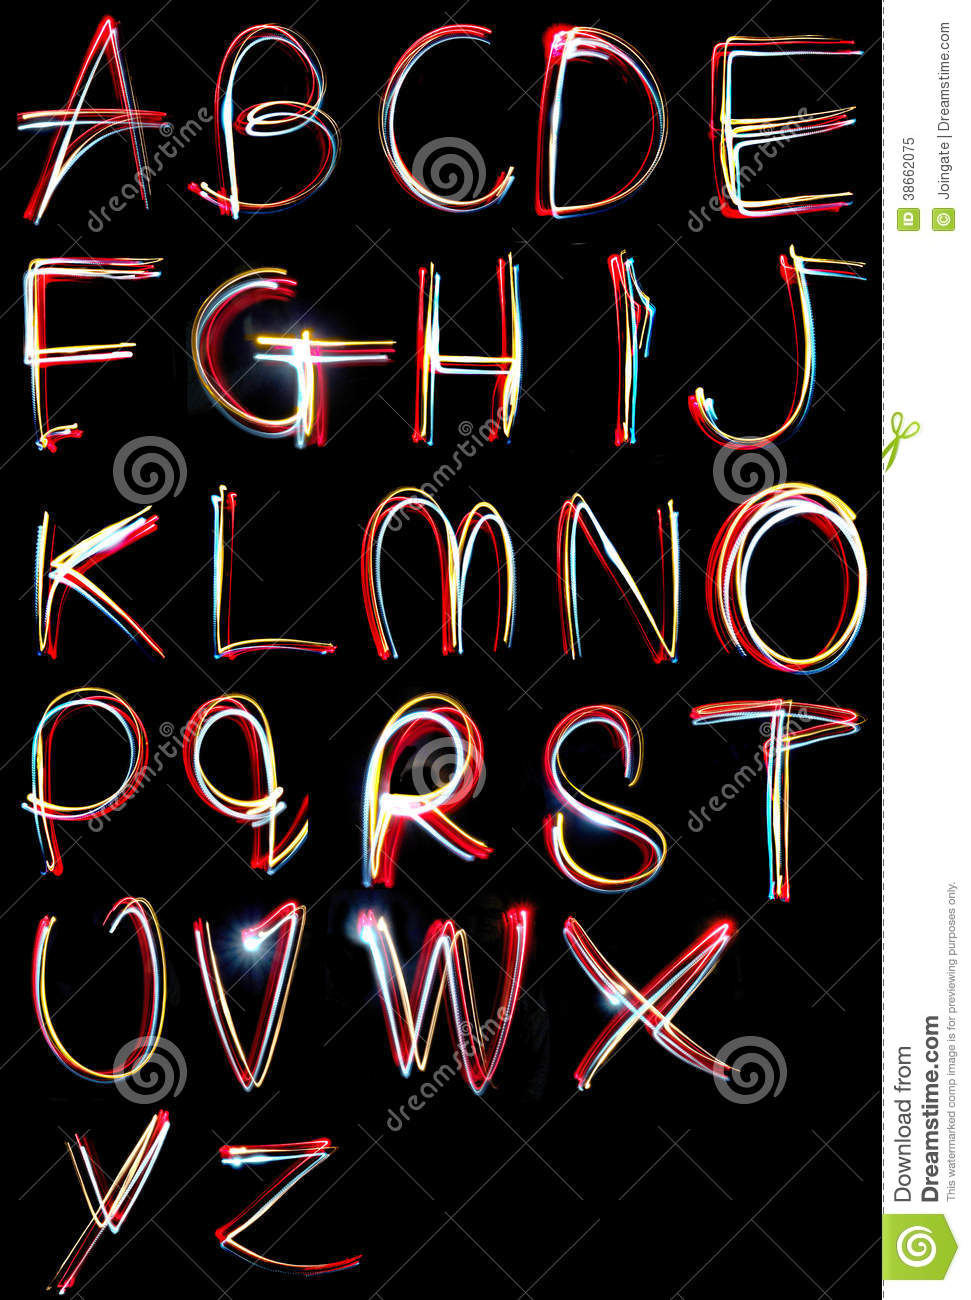 Alphabet Light Neon Writing Long Exposure Royalty Free Stock Photo Image 3